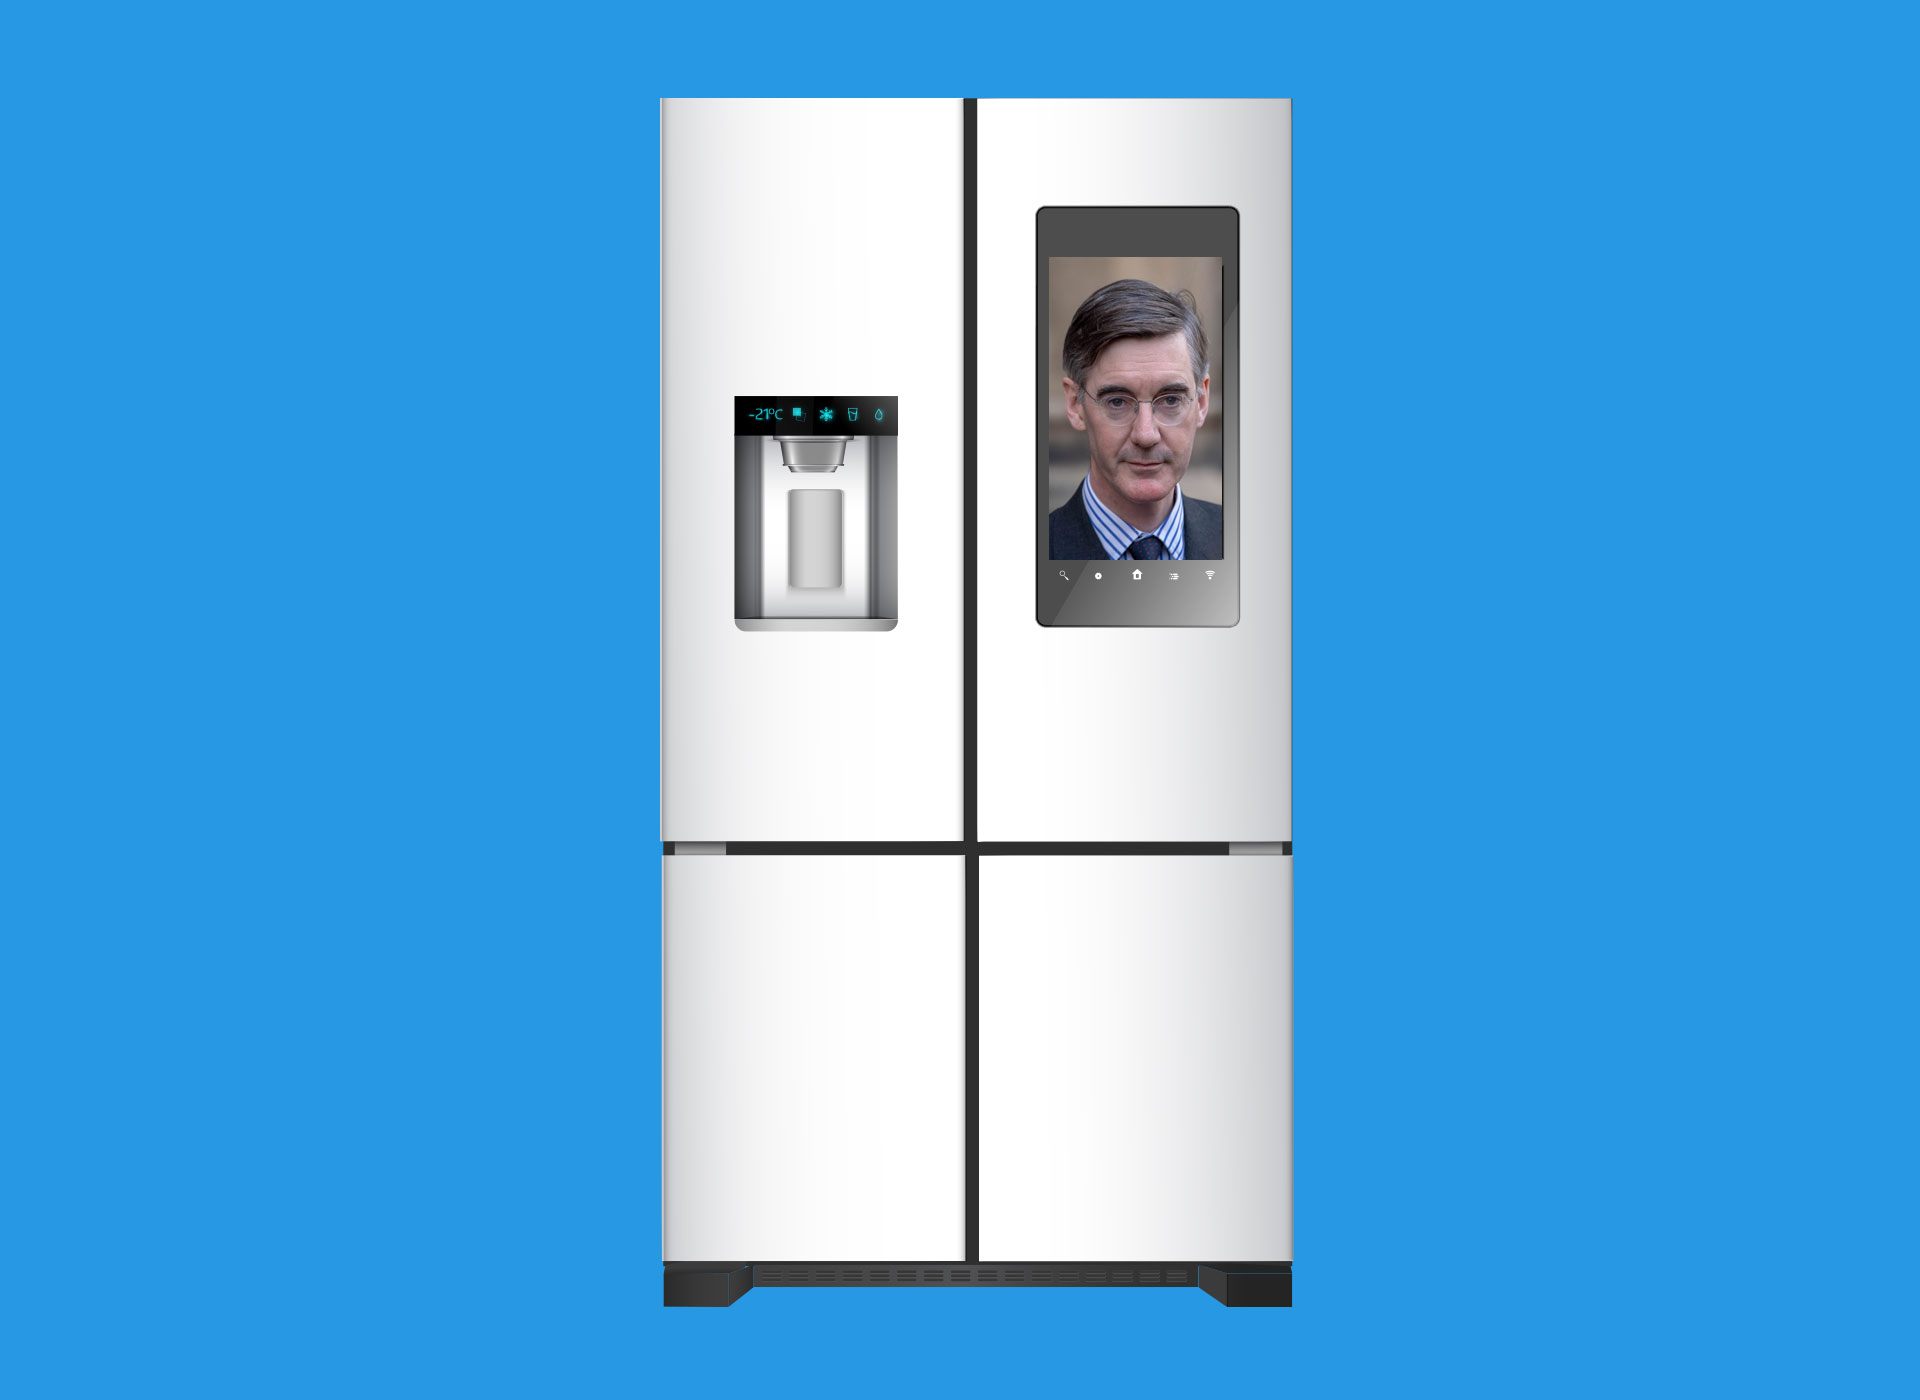 Smart fridge elections: When Jacob Rees-Mogg campaigns next to your milk